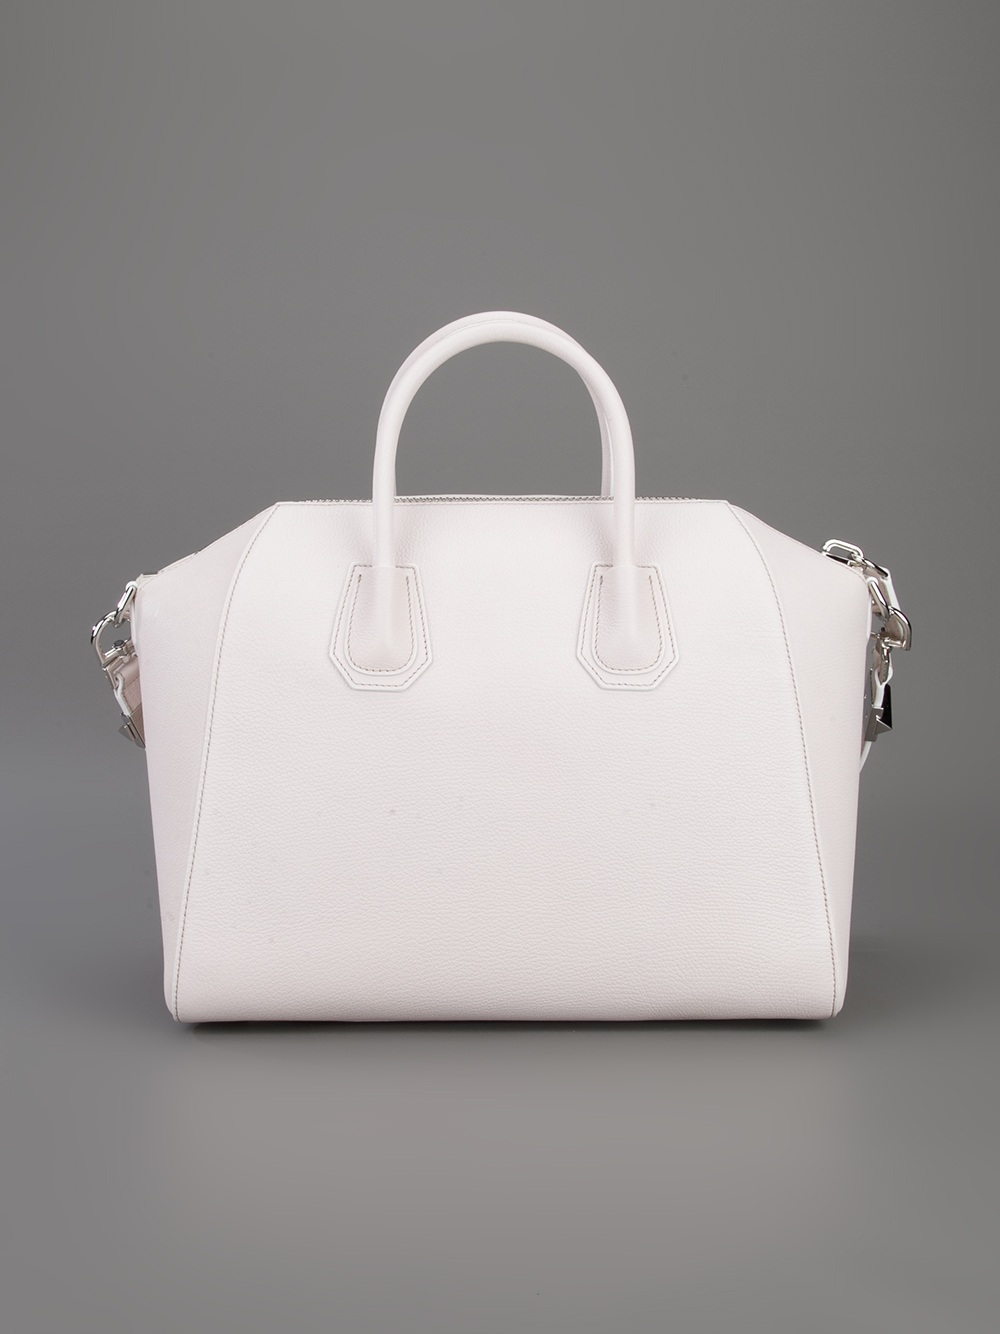 Givenchy Medium Antigona Tote in Ivory (White)